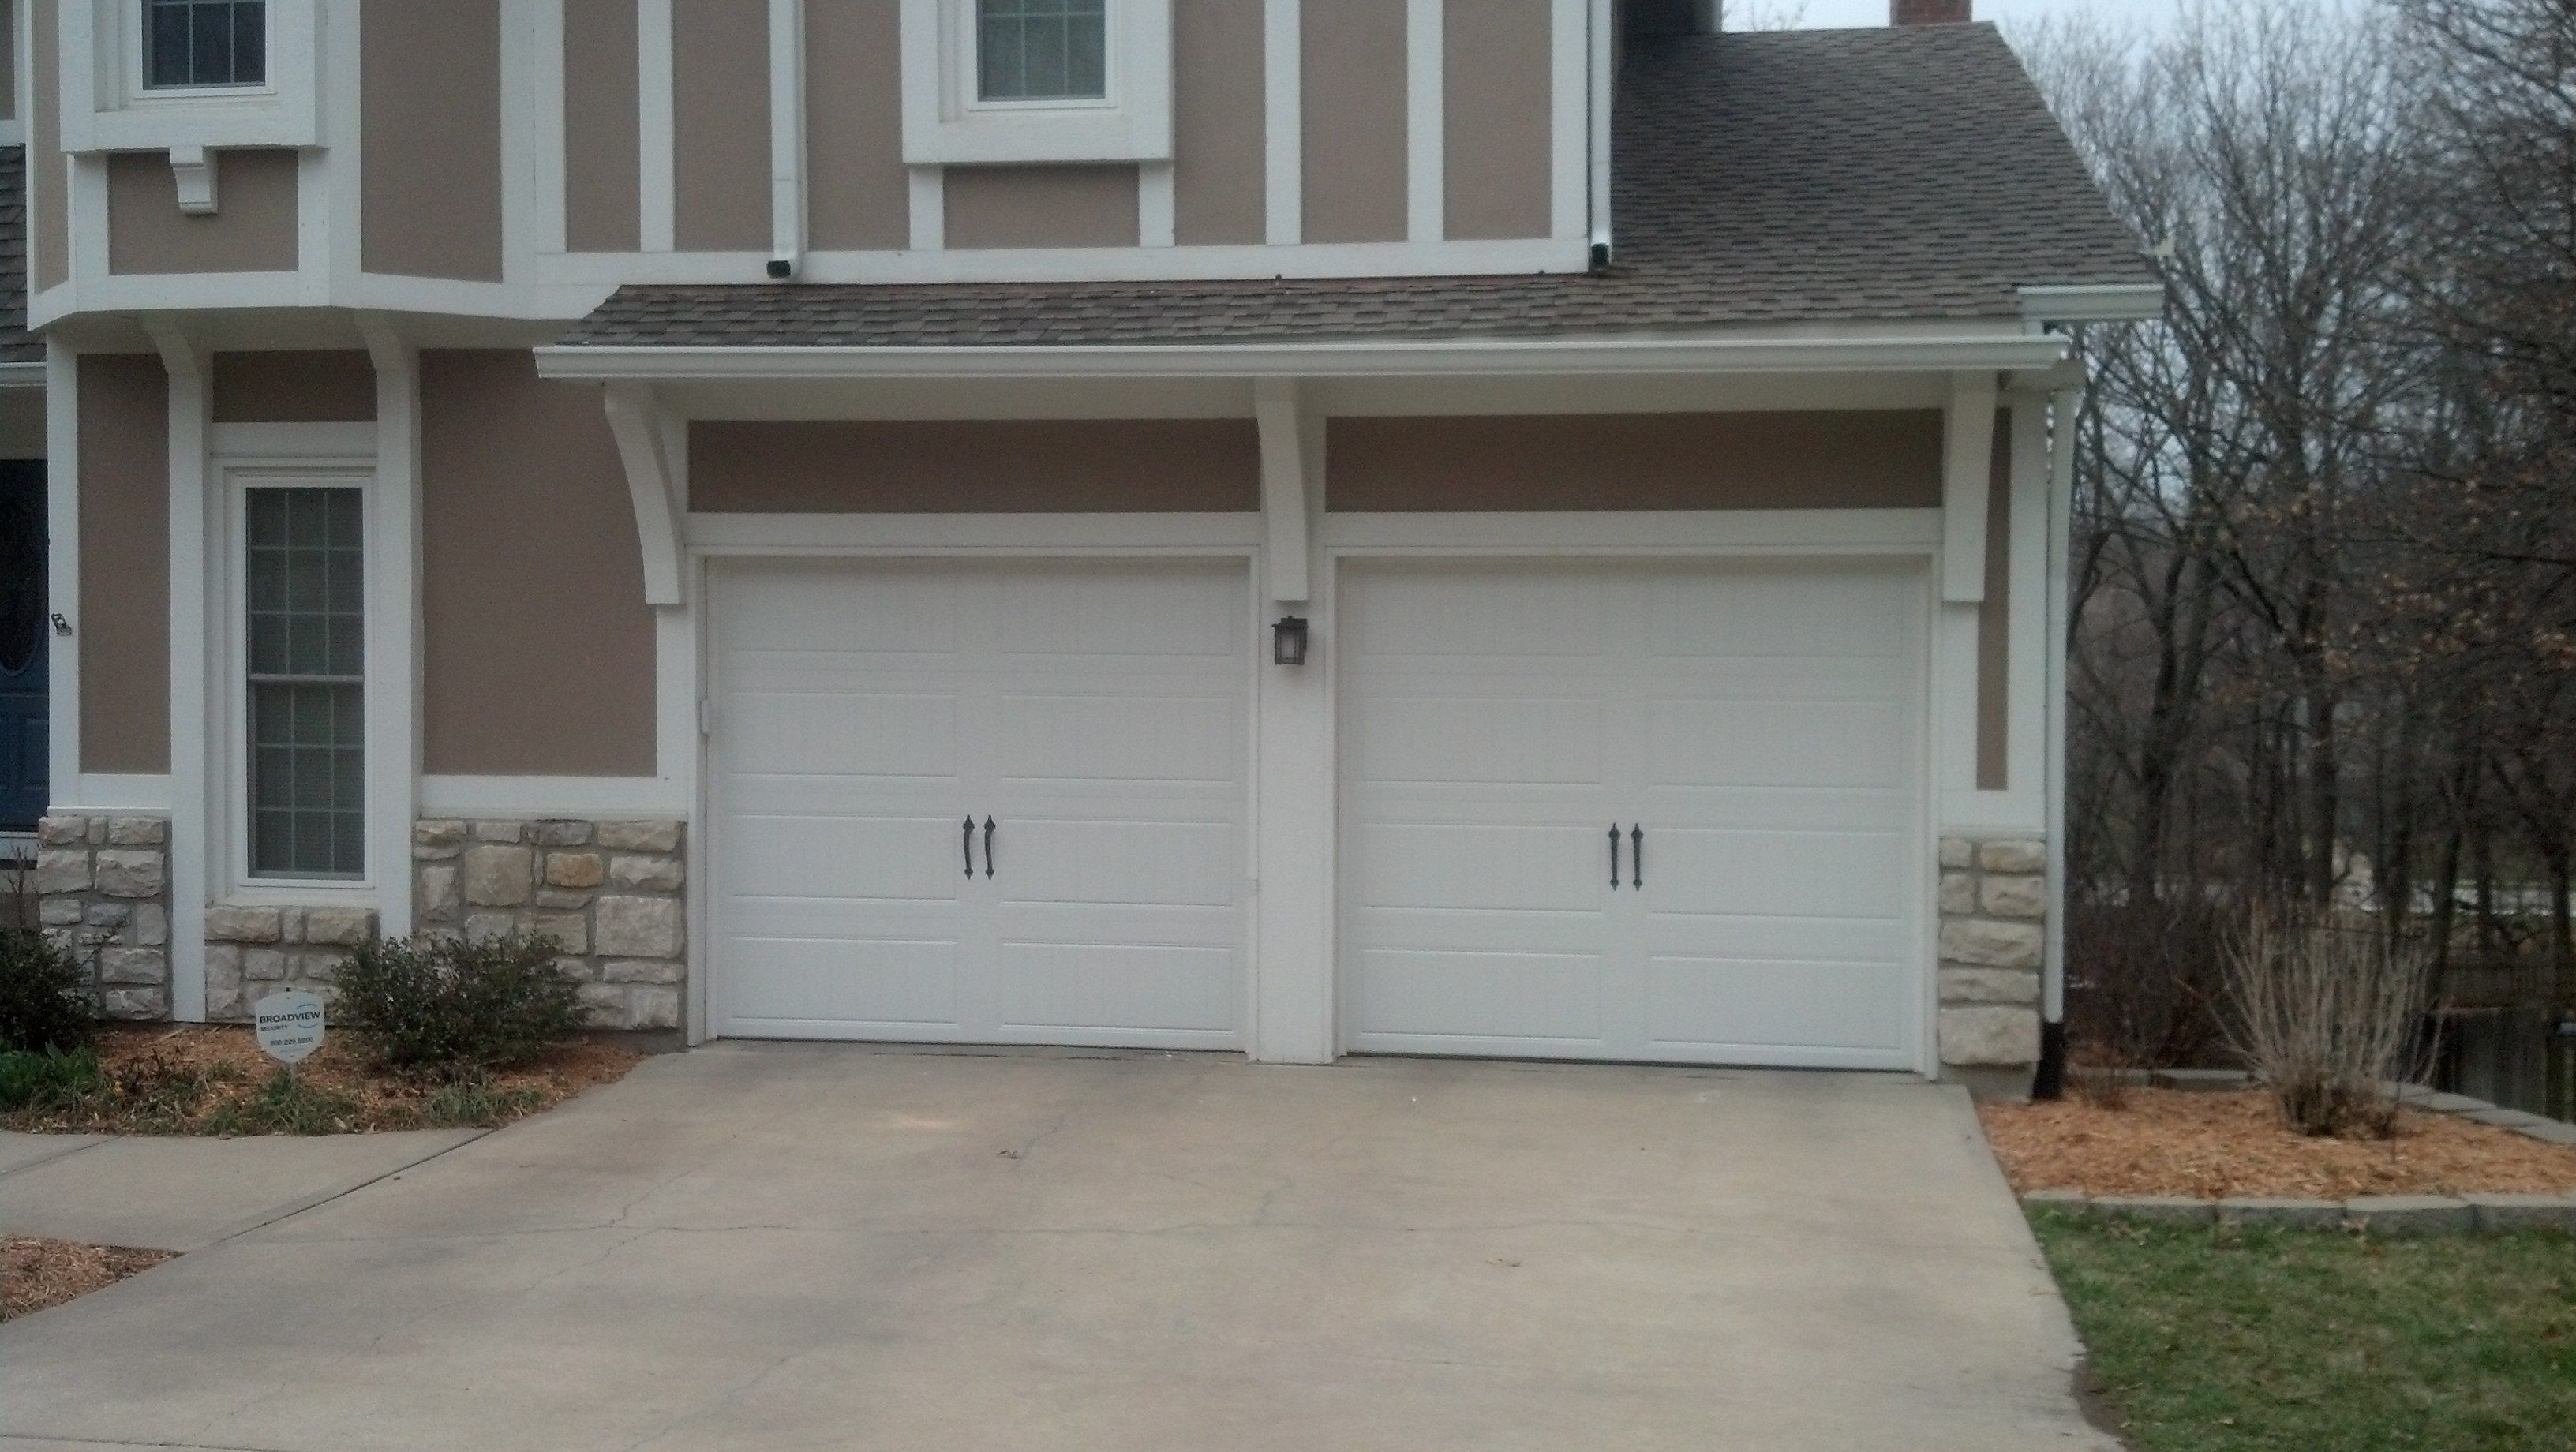 Clopay gallery collection steel insulated garage doors for Buy clopay garage doors online